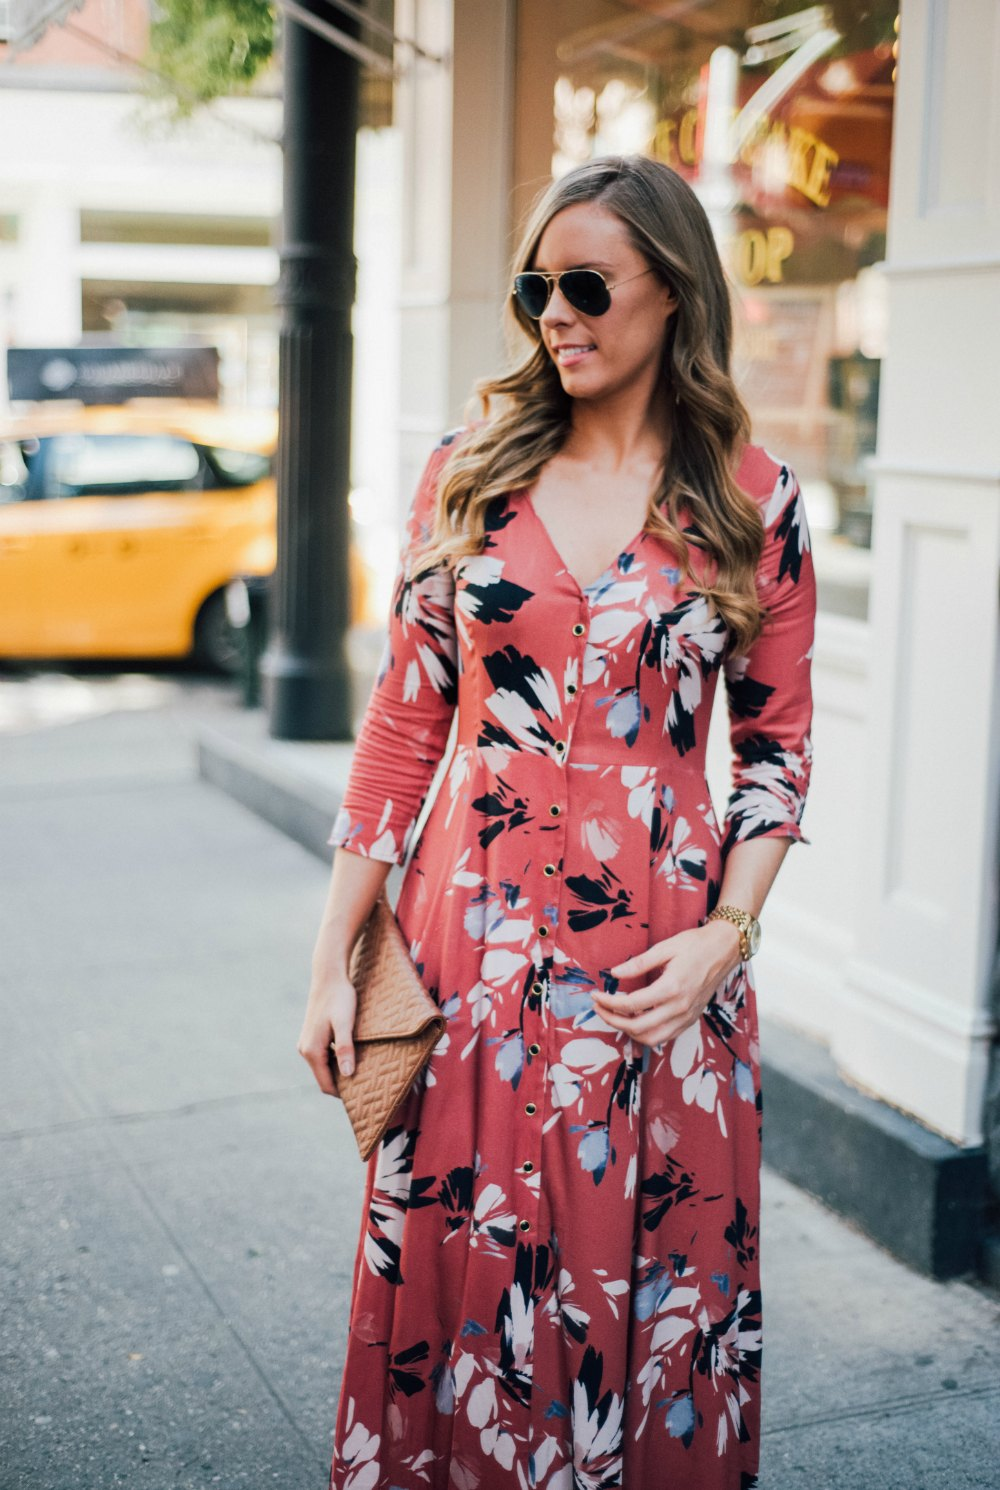 yumi kim maxi dress new york spring outfit soho lauren slade style elixir fashion blog 3 | Summer Floral Maxi Dress in Soho featured by popular US blogger Style Elixir